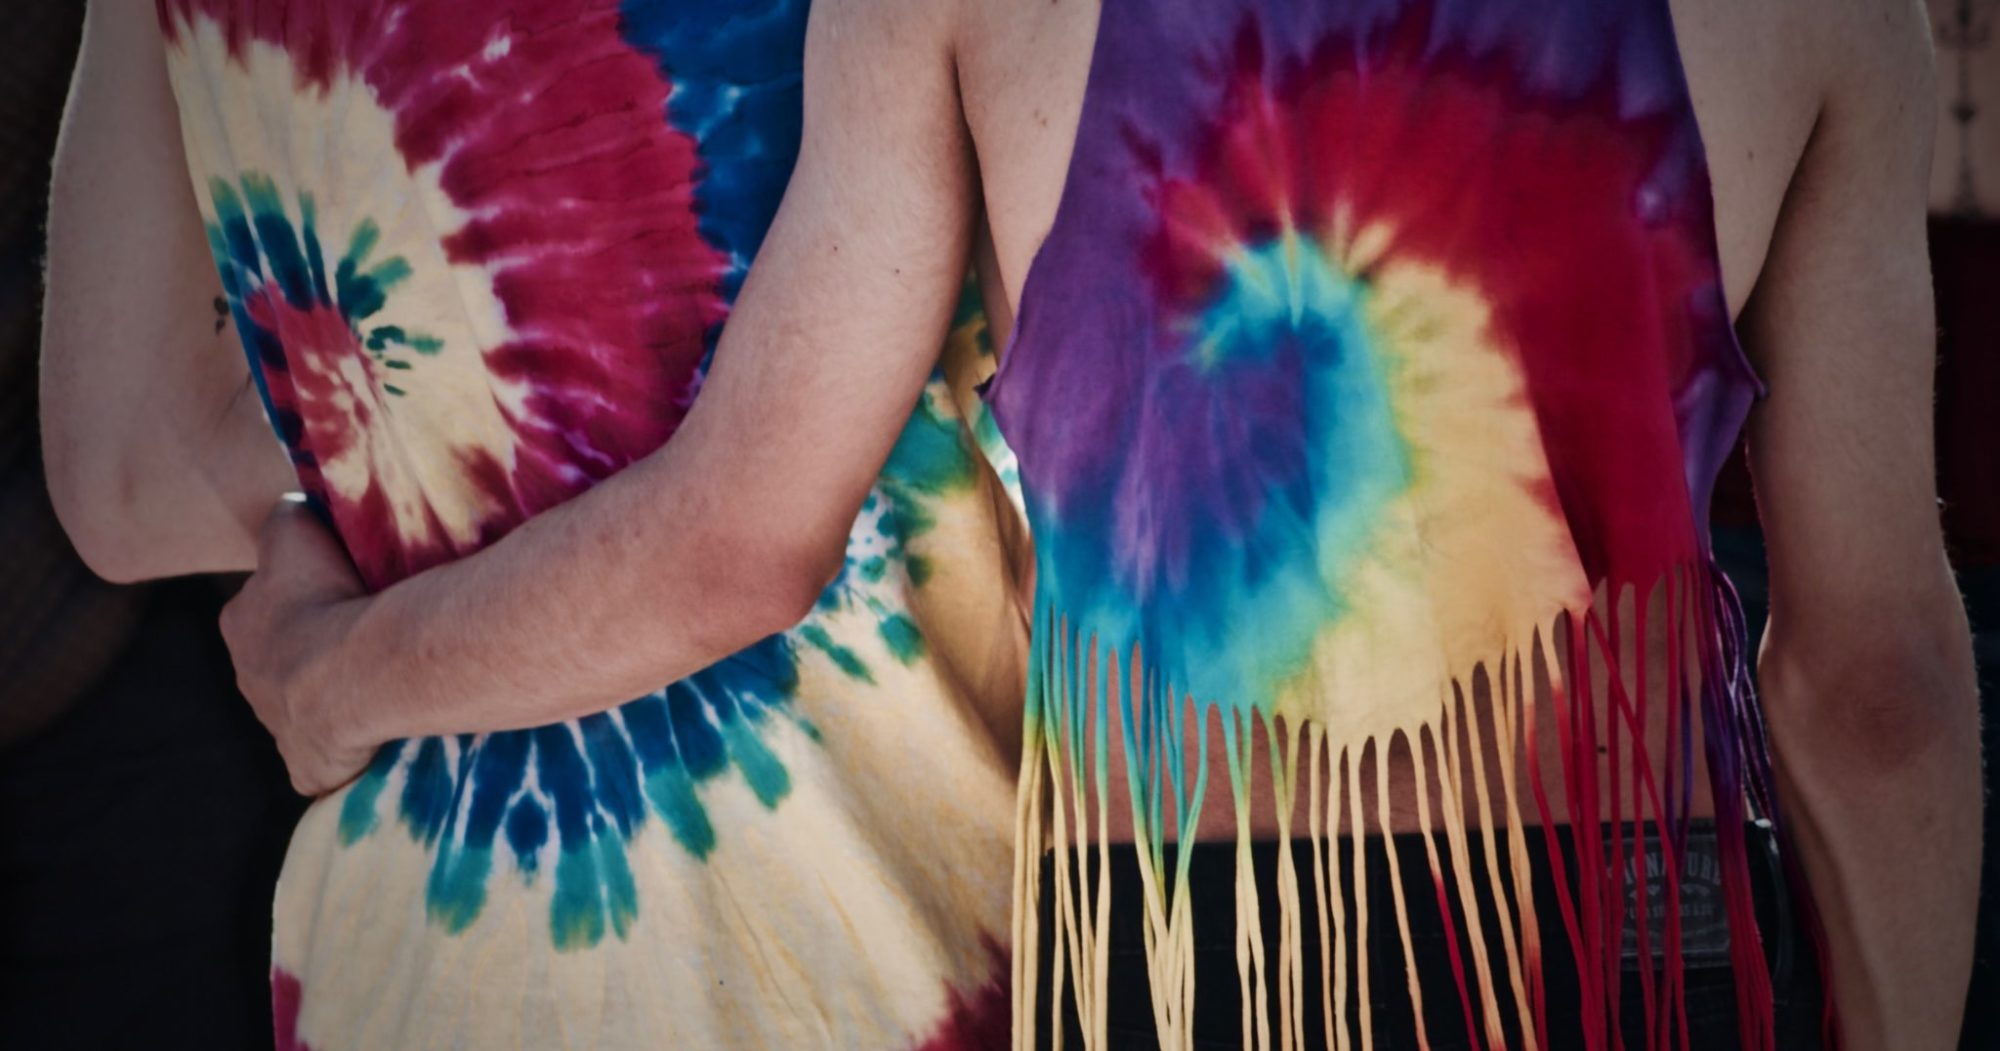 Couple wearing tie dyed shirts